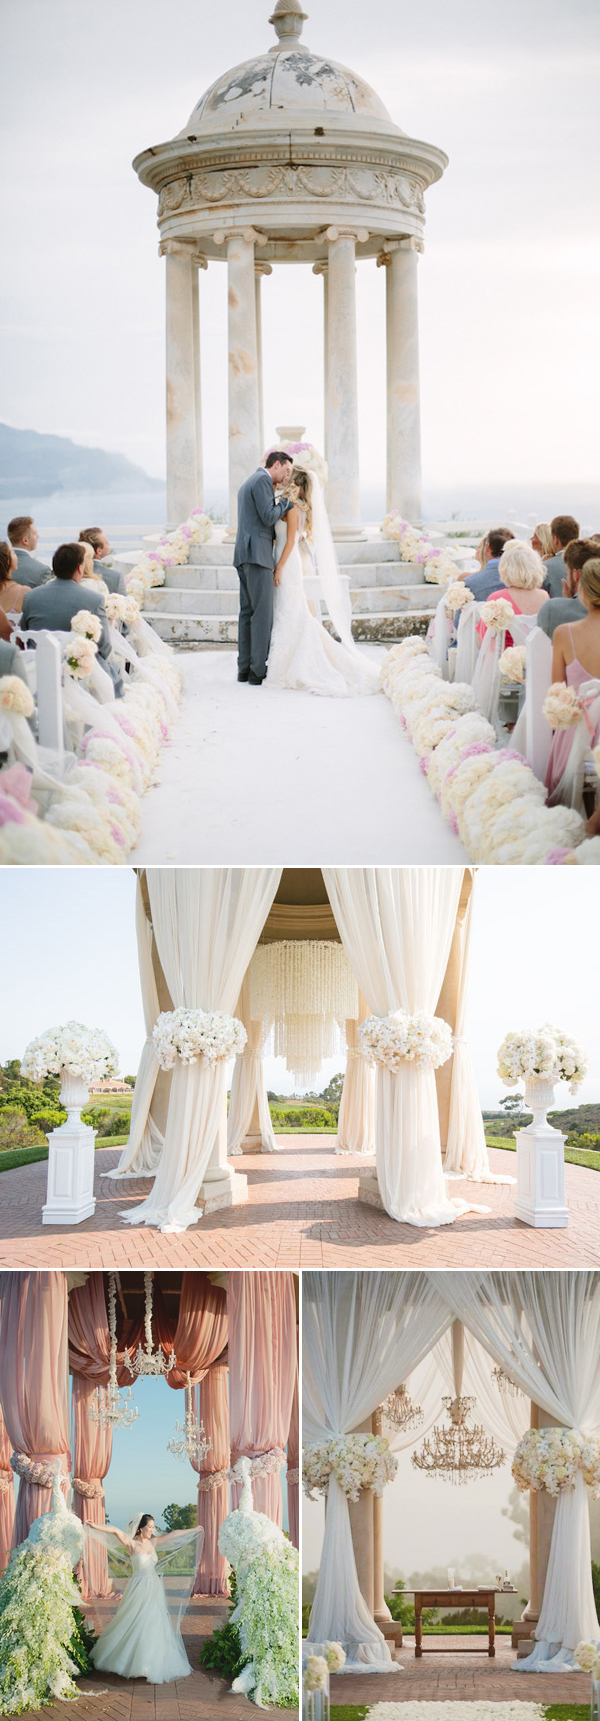 Timeless romantic wedding altar ideas looks classic and for Altar wedding decoration